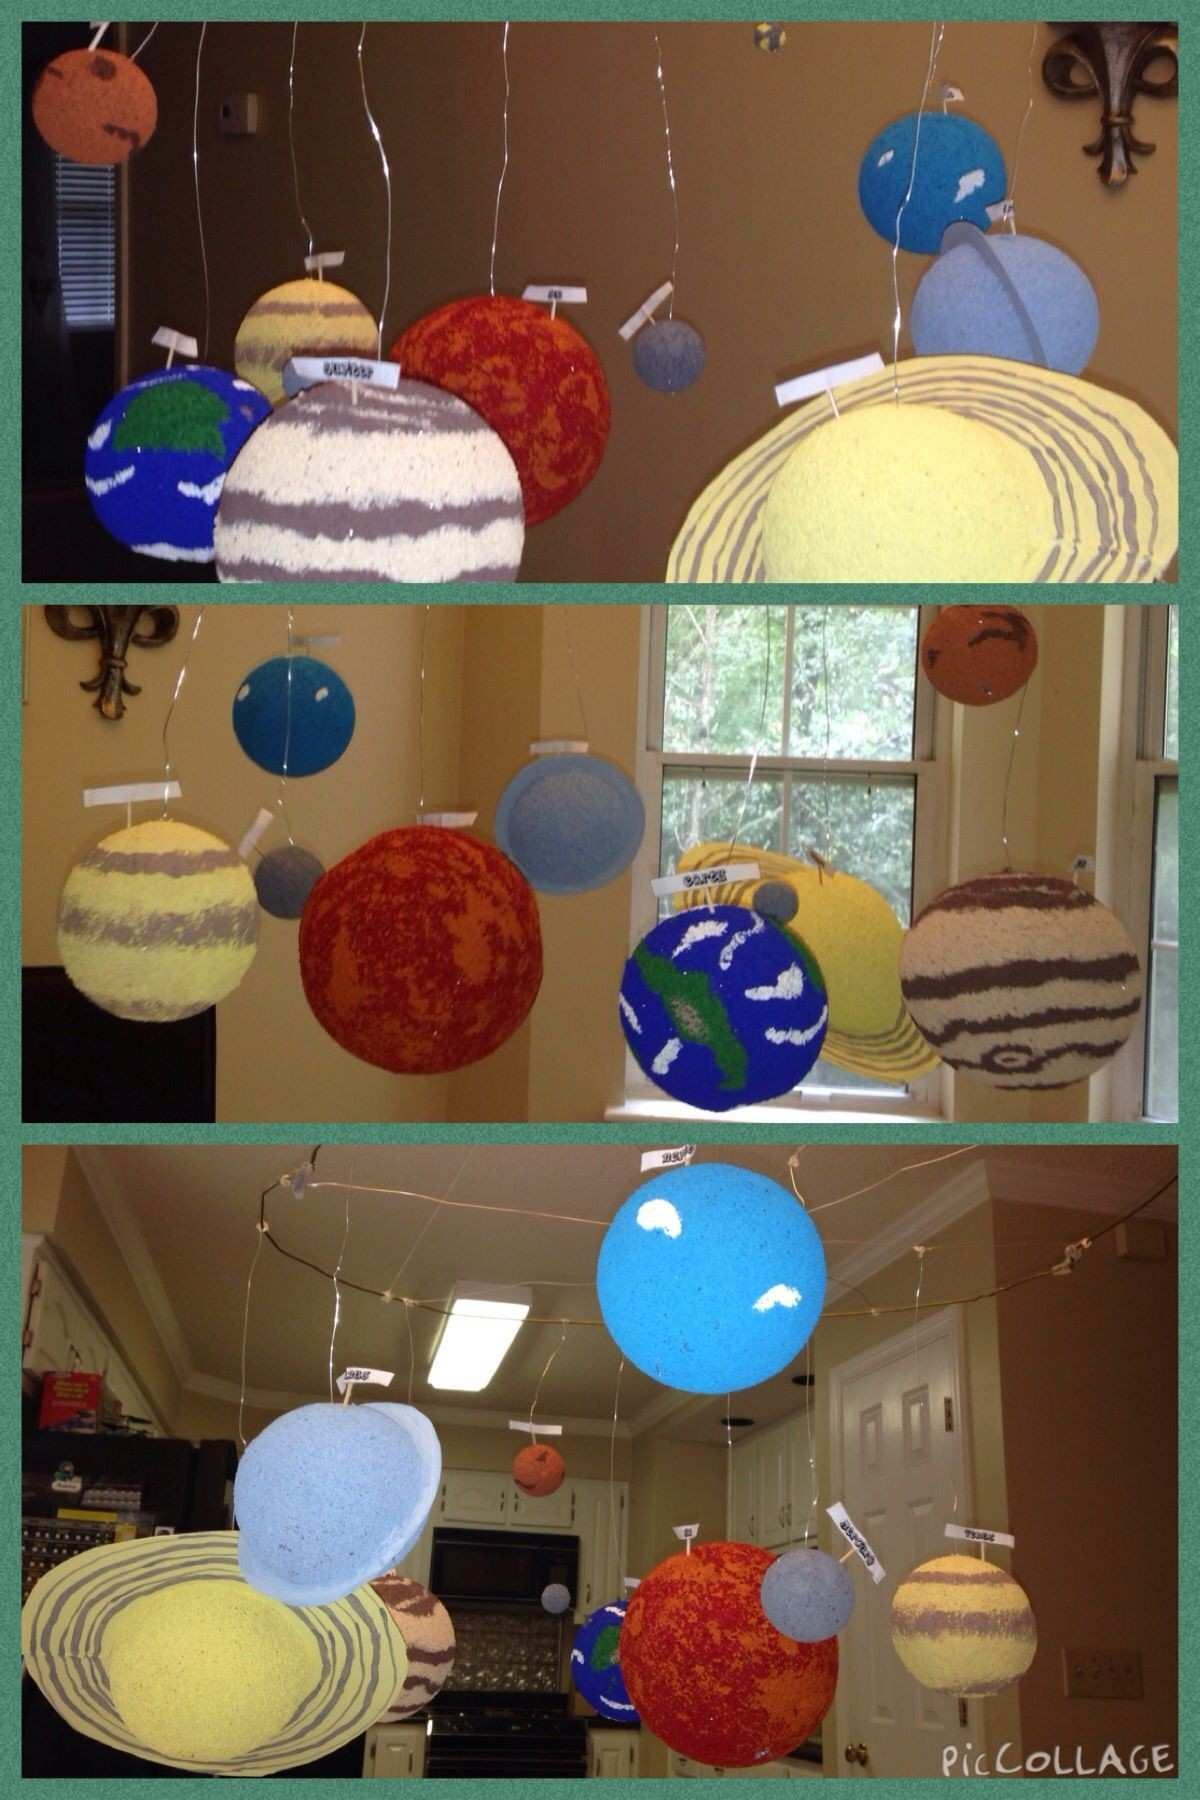 Solar system project We used two wire coat hangers to make a ring